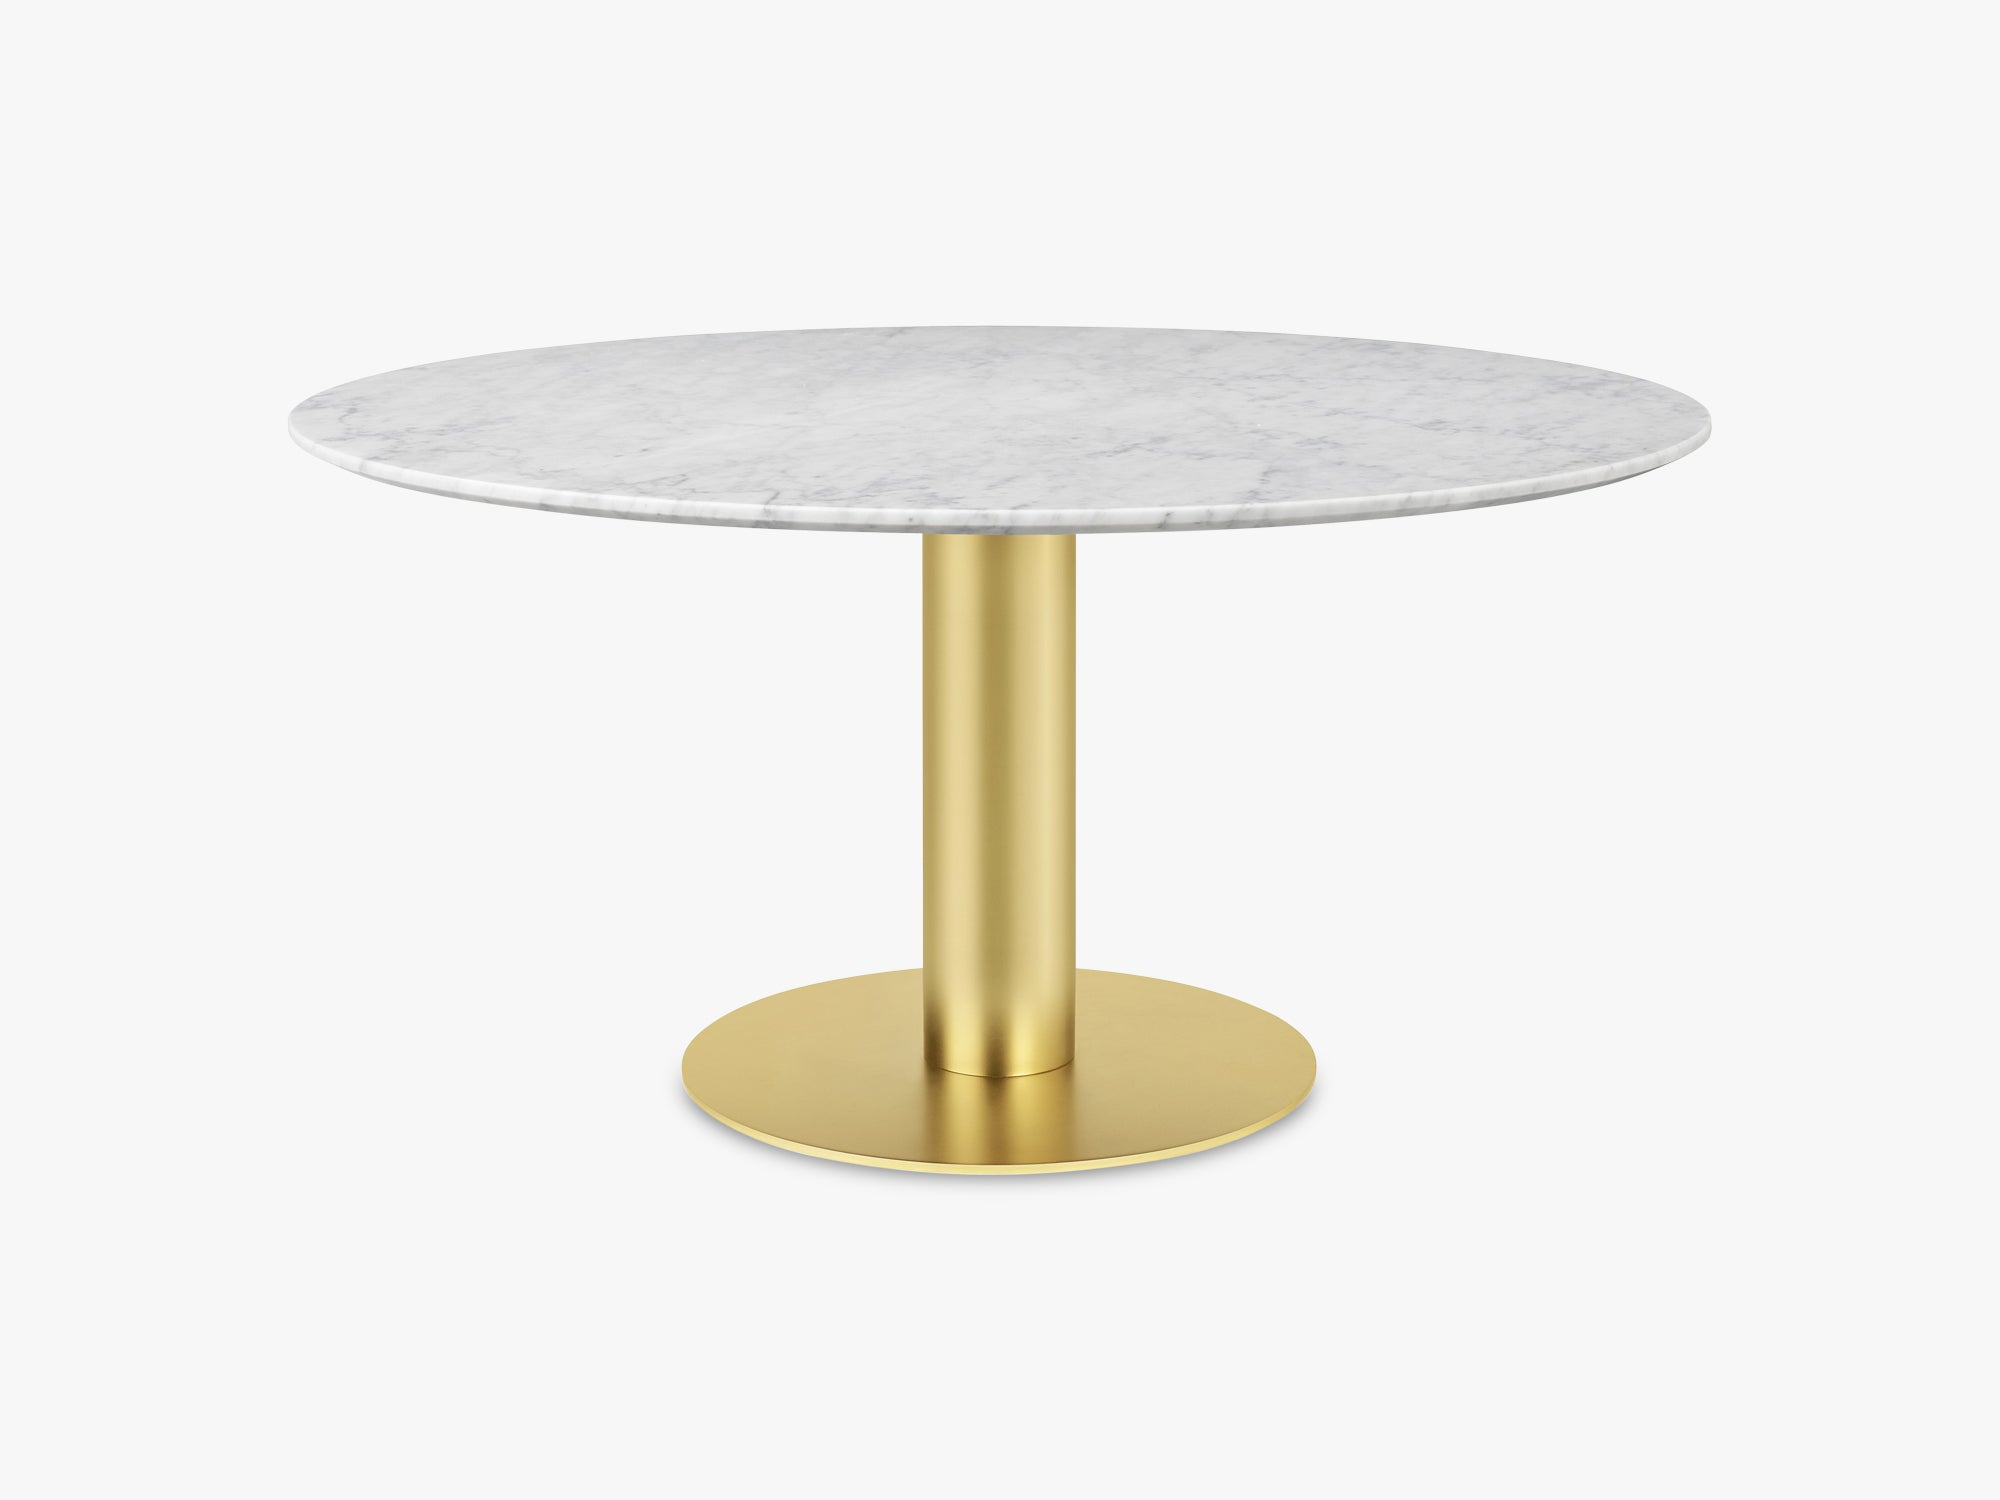 GUBI 2.0 Dining Table - Round - Ø150 - Brass base, Marble White top fra GUBI